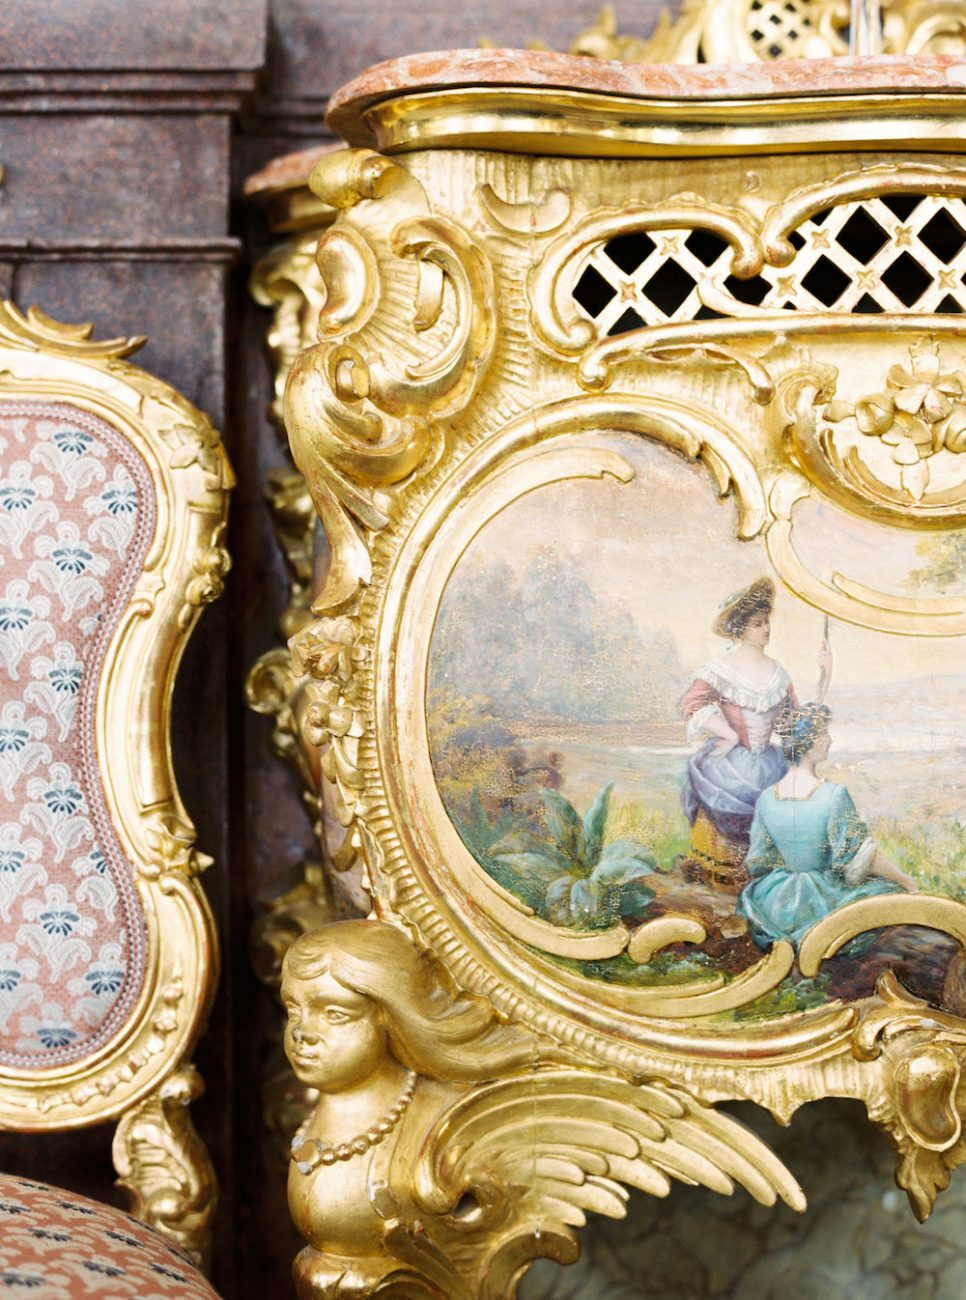 Palace Wedding Inspiration - gold ornate furniture